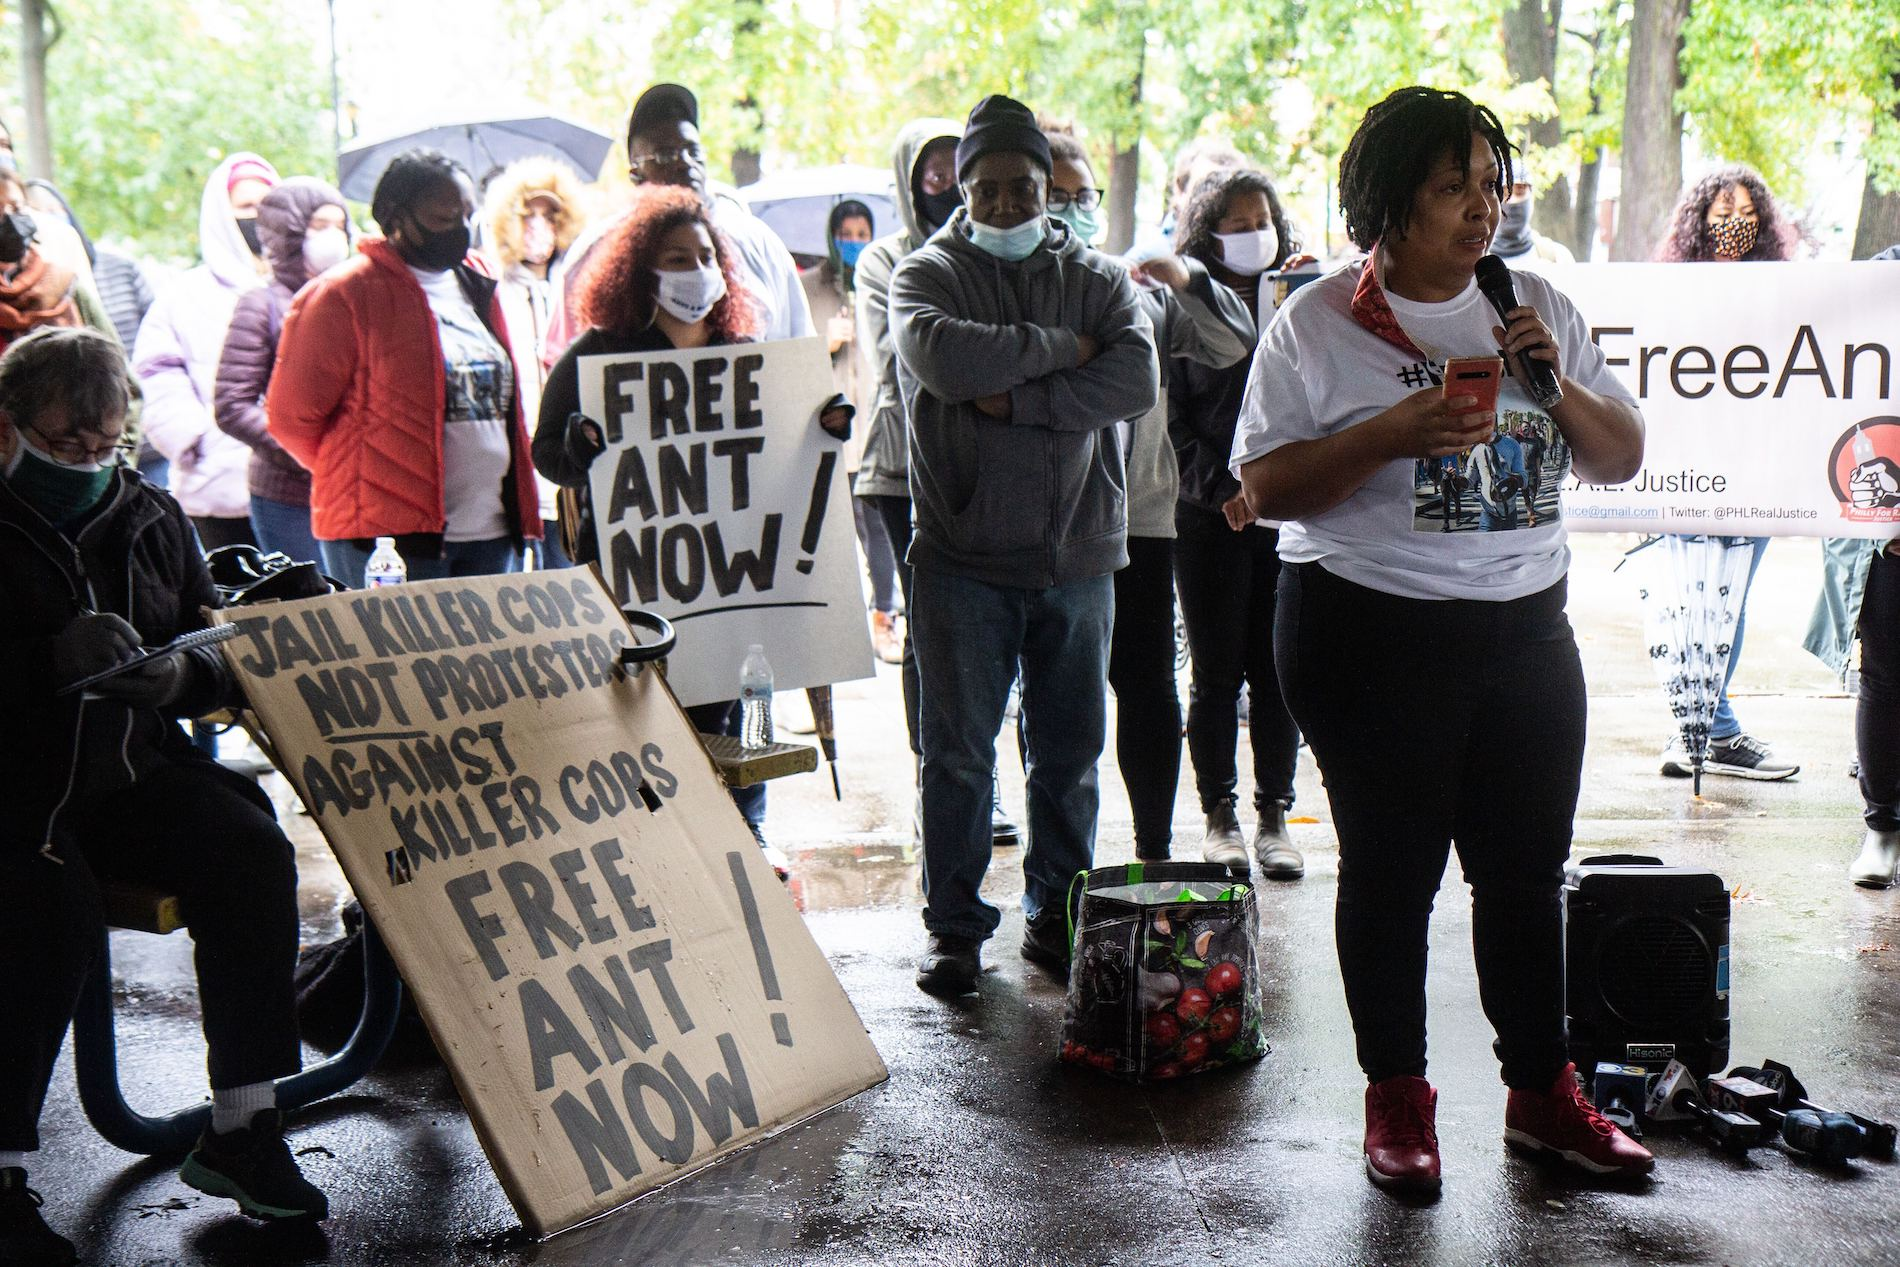 Friends of arrested West Philly activist Anthony Smith rally to call for his release